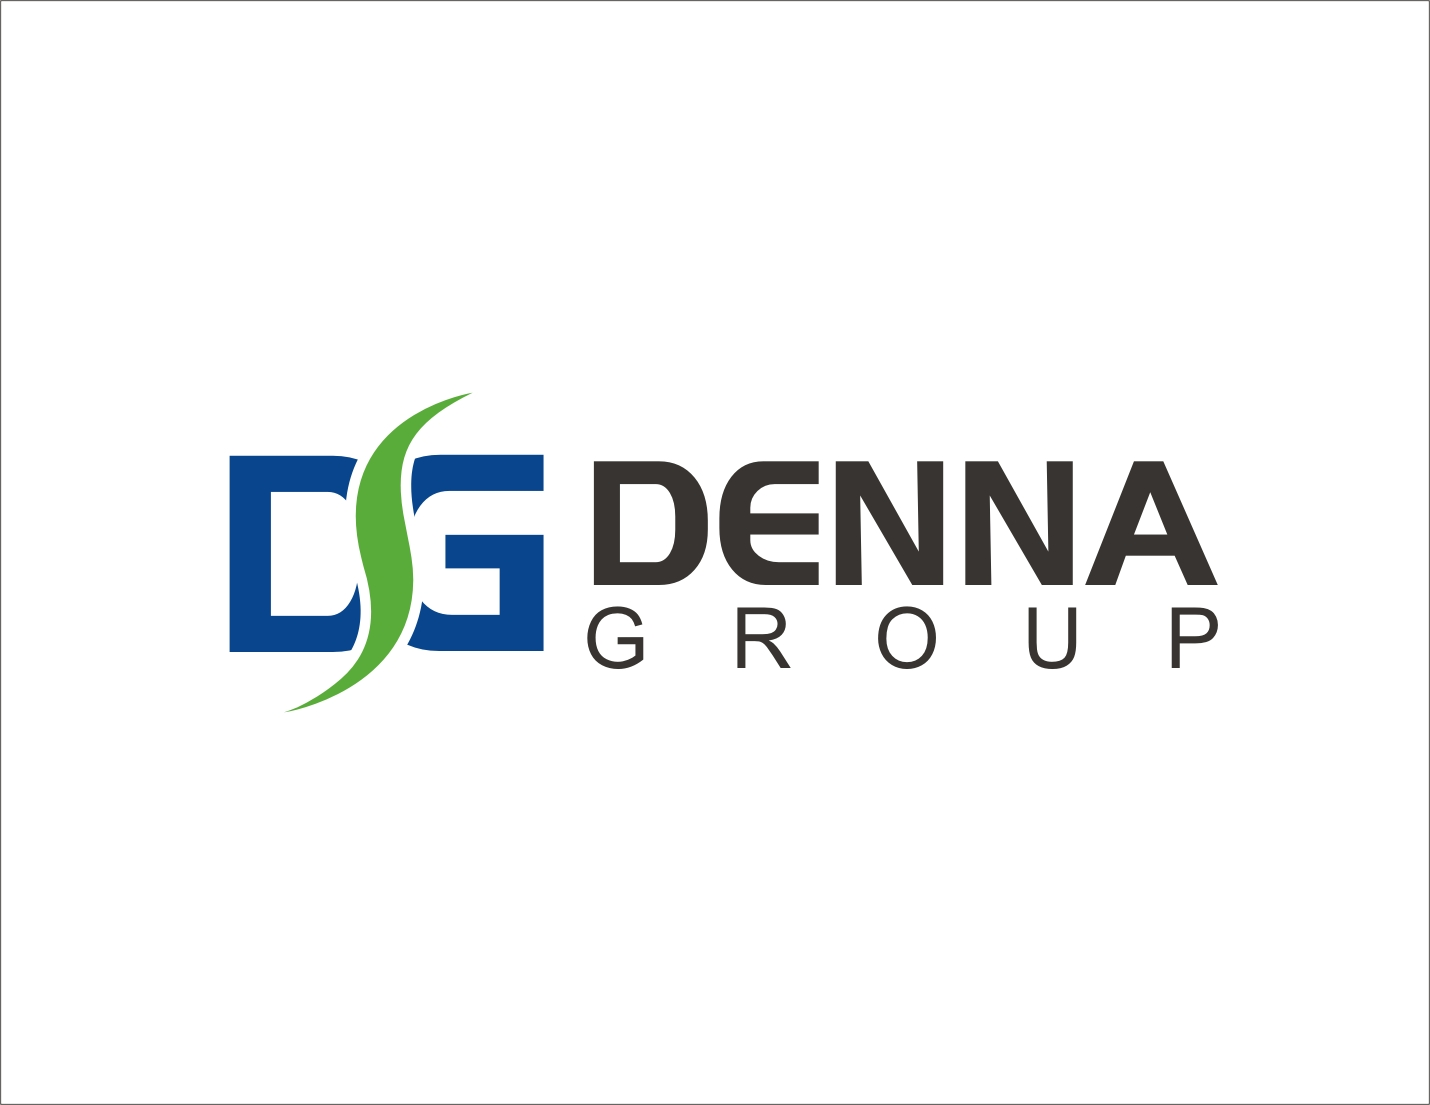 Logo Design by Private User - Entry No. 198 in the Logo Design Contest Denna Group Logo Design.